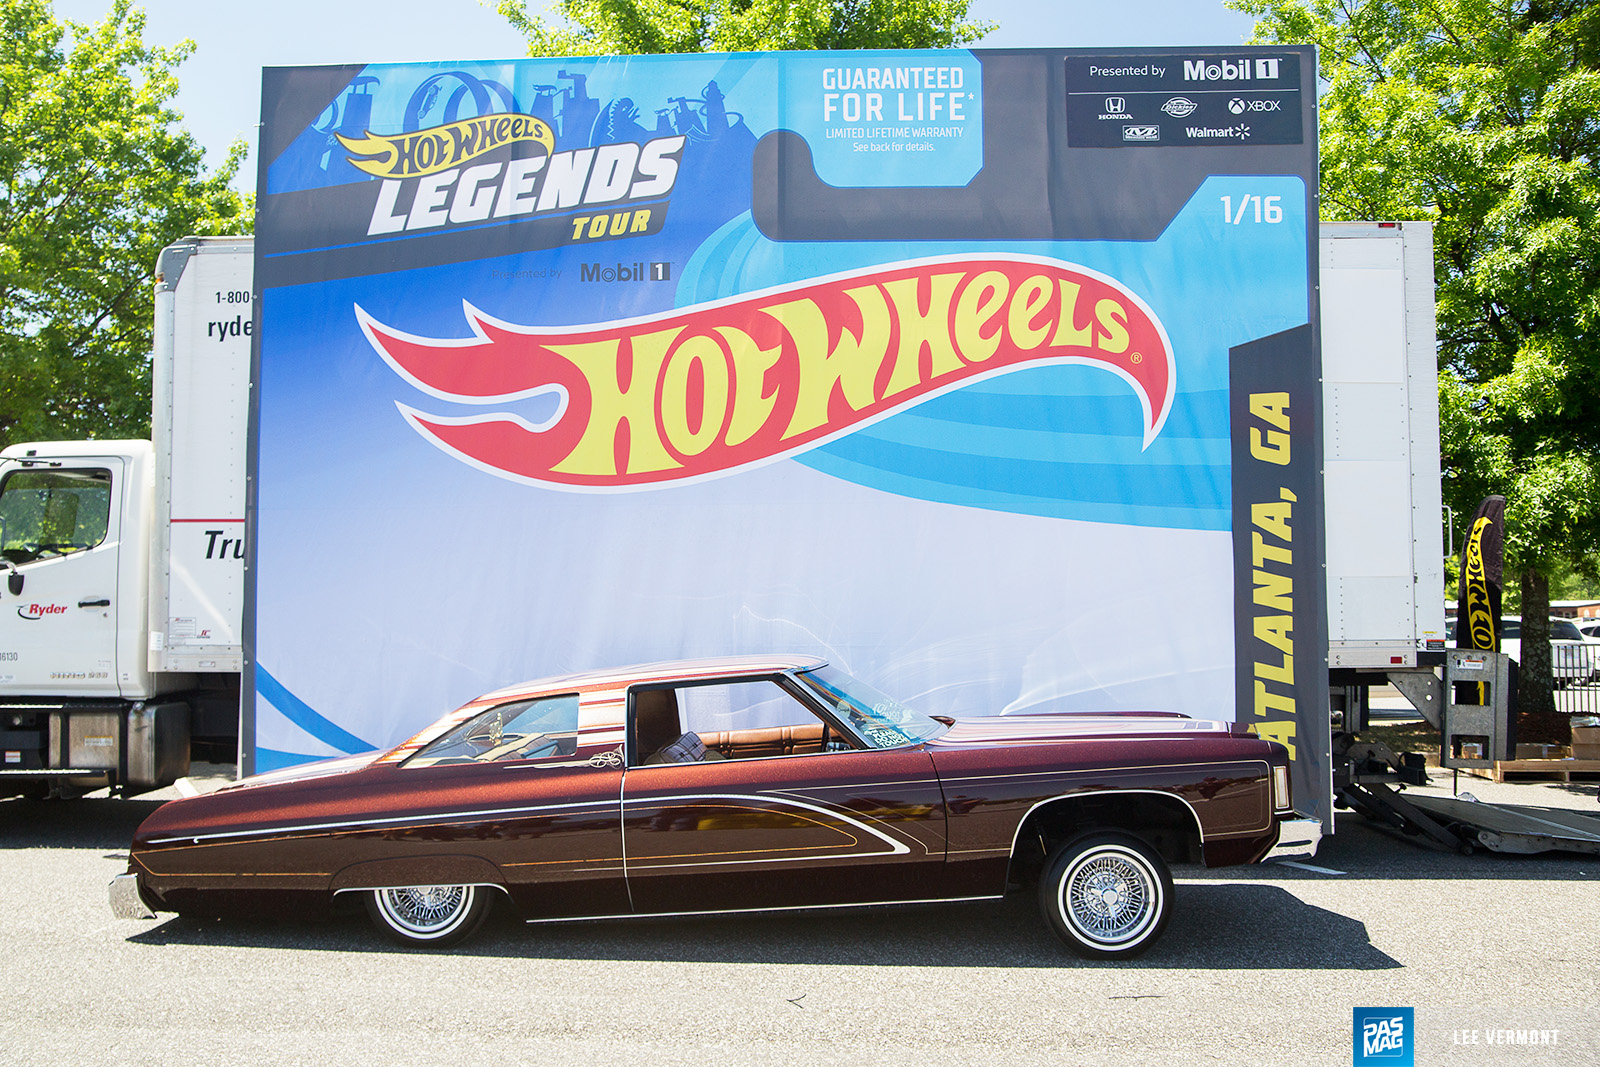 27 Hot Wheels Legends Tour 2019 Atlanta PASMAG